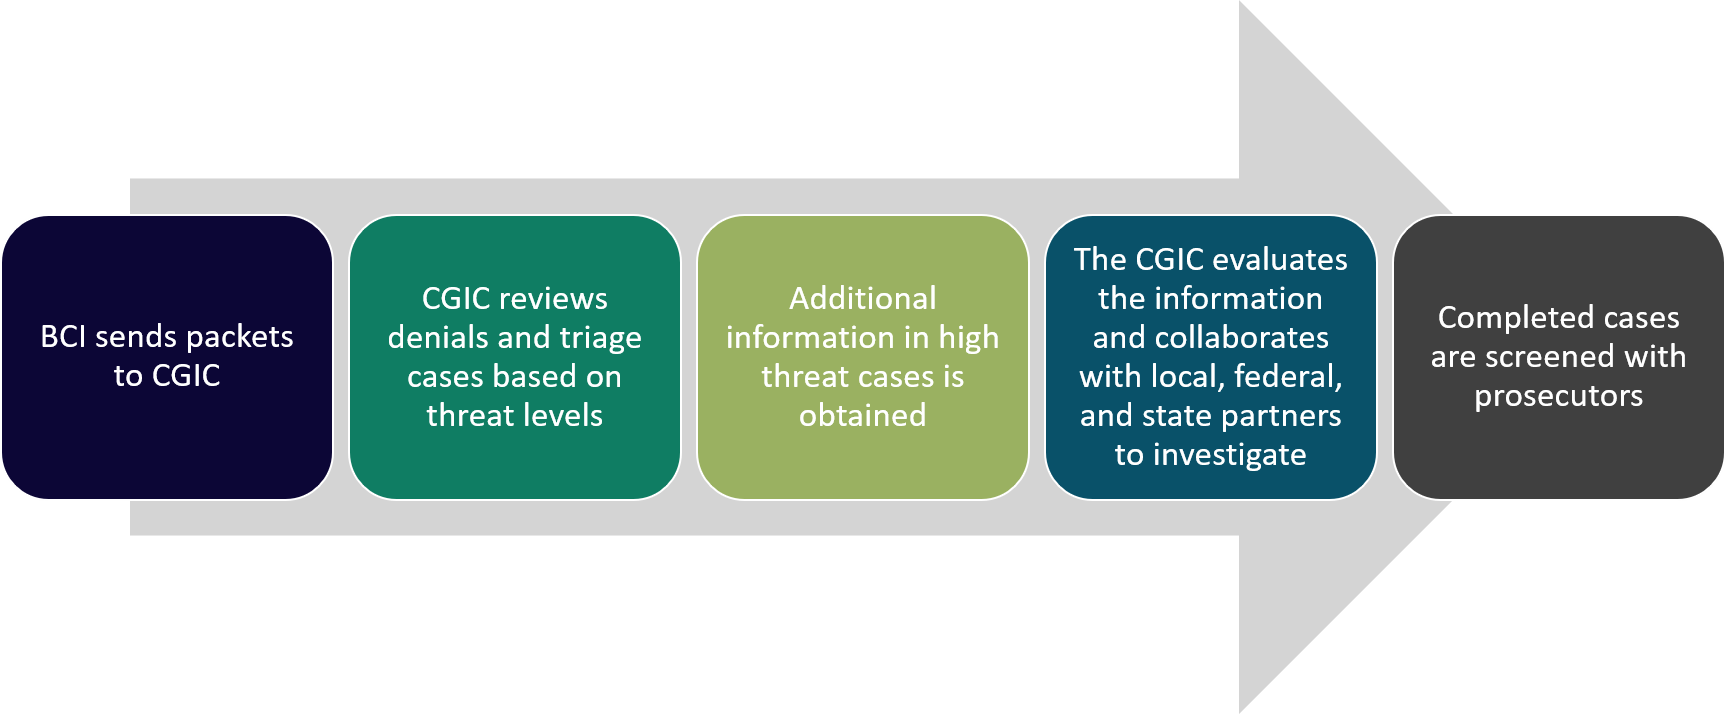 1-BCI sends packets to CGIC 2- CGIC reviews denials and triage cases based on threat levels 3- Additional information in high threat cases is obtained 4- The CGIC evaluates the information and collaborates with local, federal, and state partners to investigate 5-Completed cases are screened with prosecutors